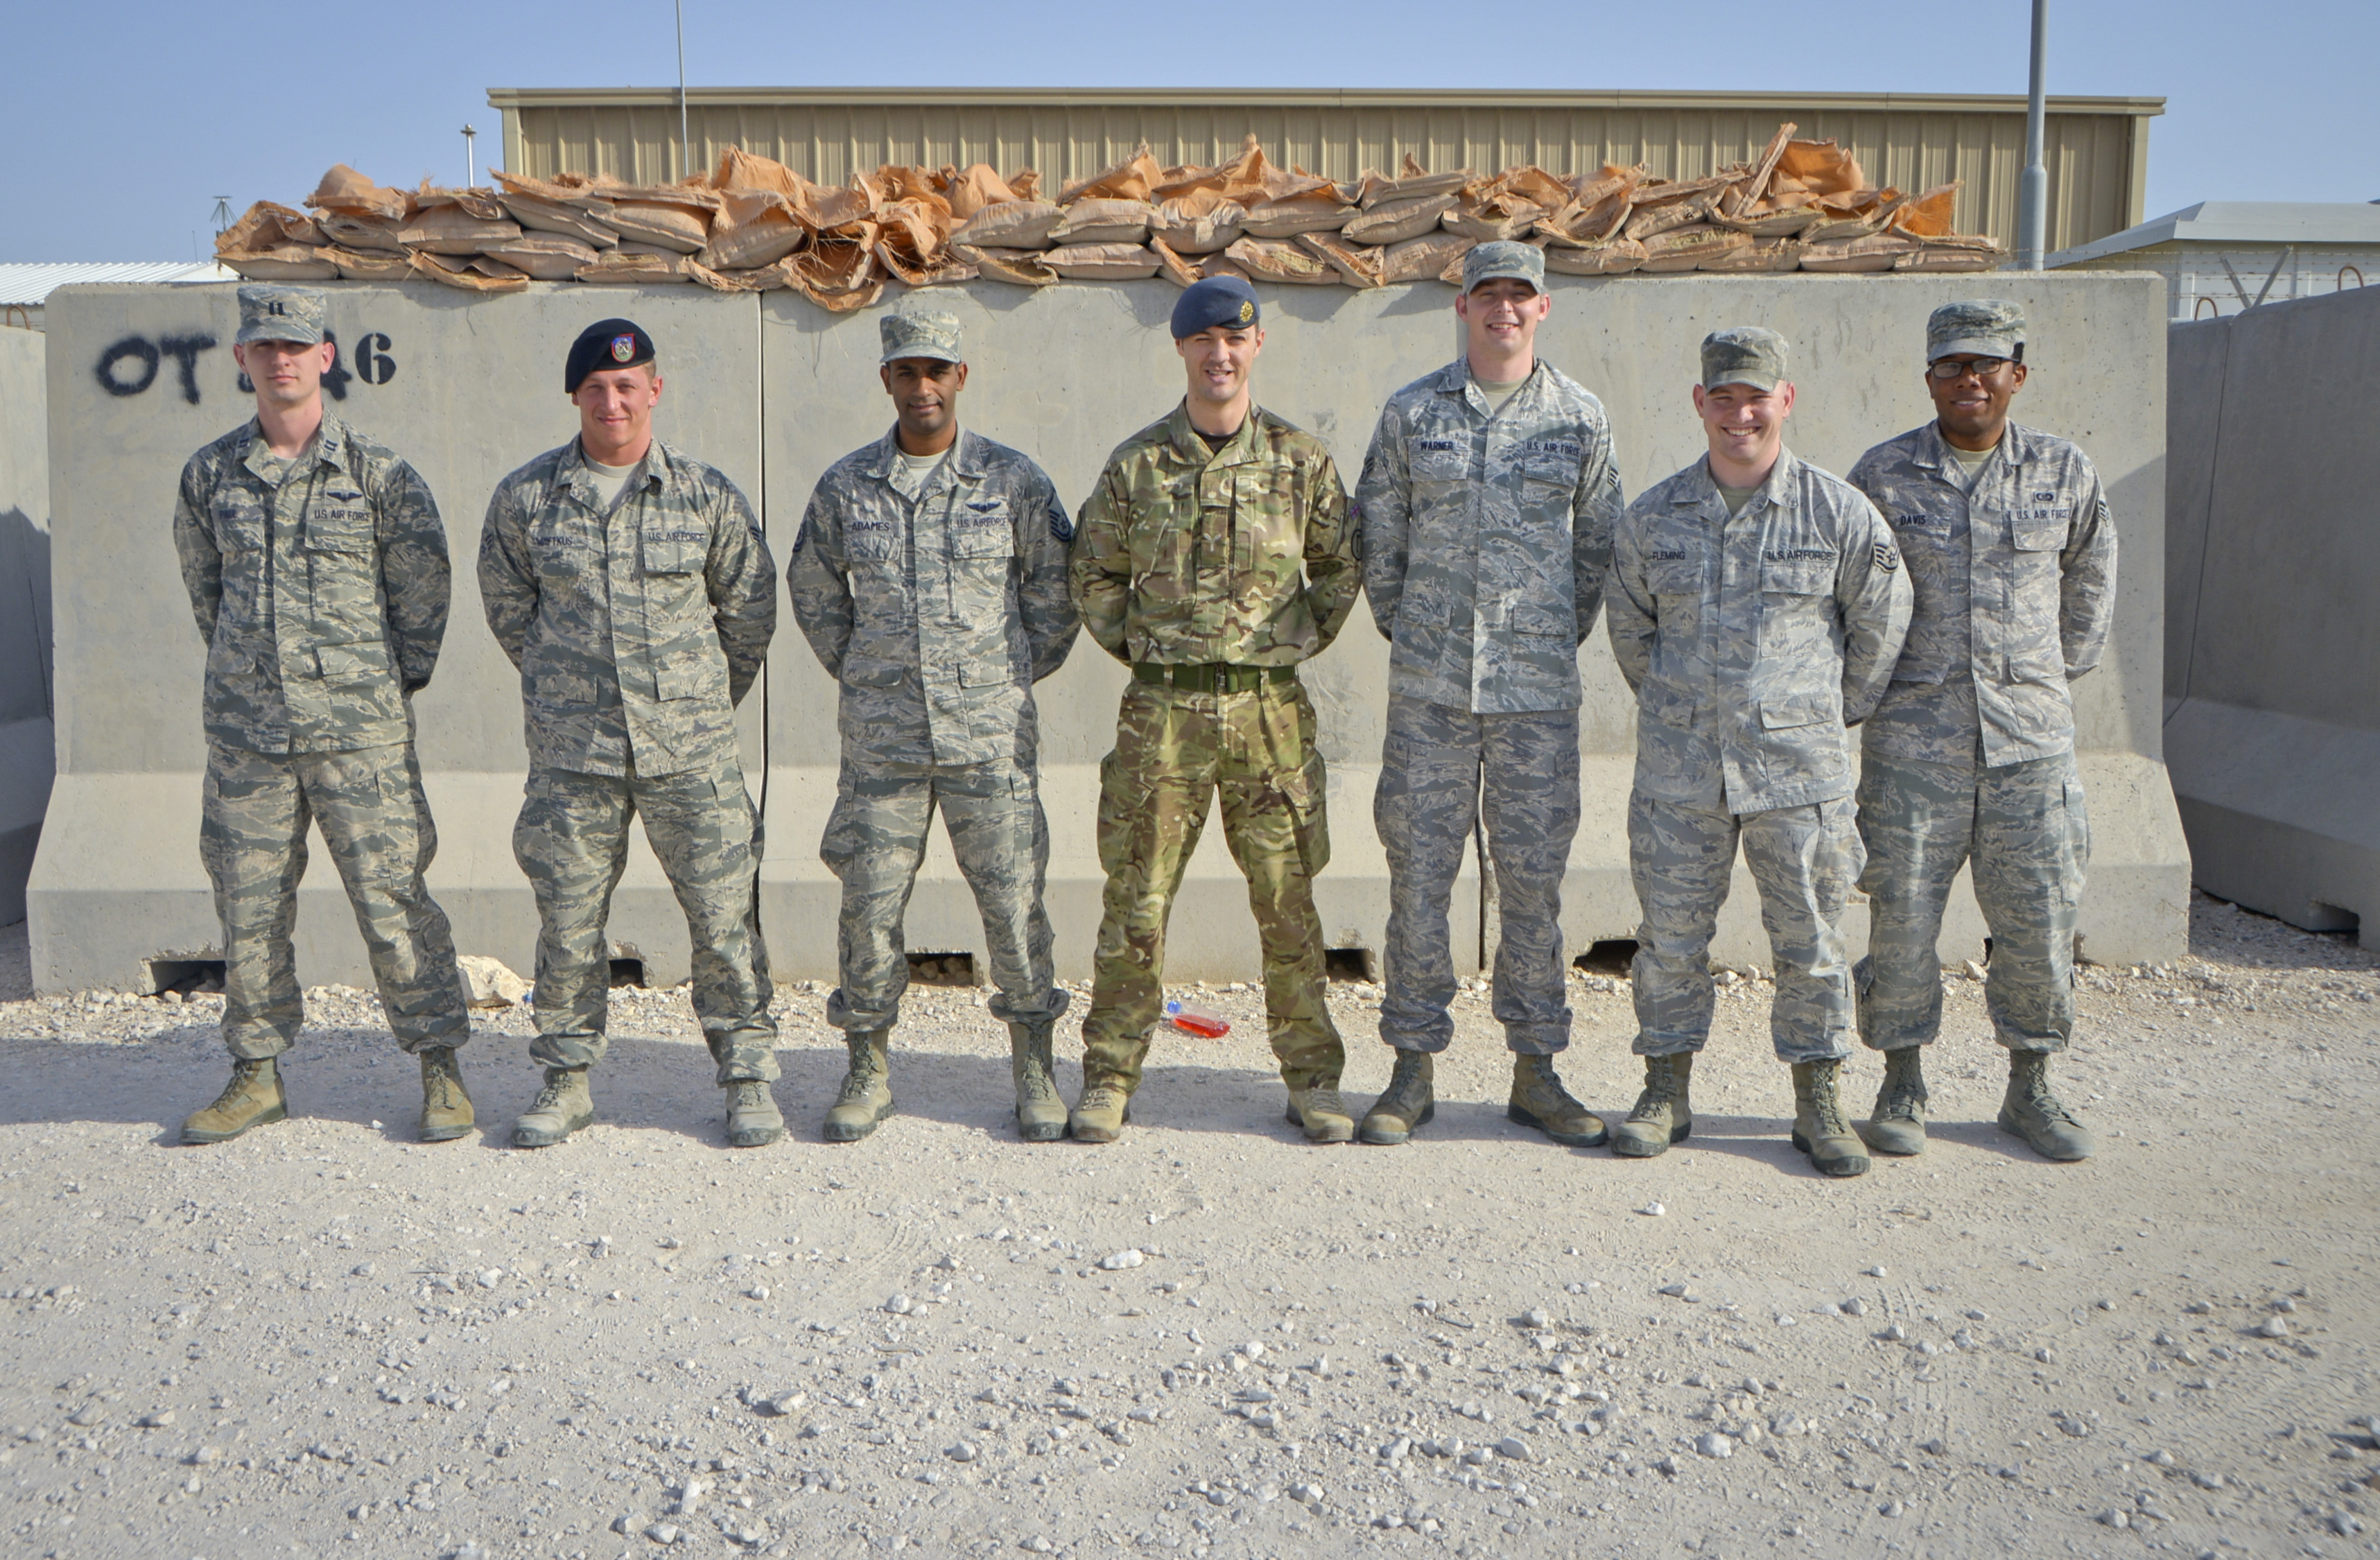 717th EASOS supports ground troops through air superiority